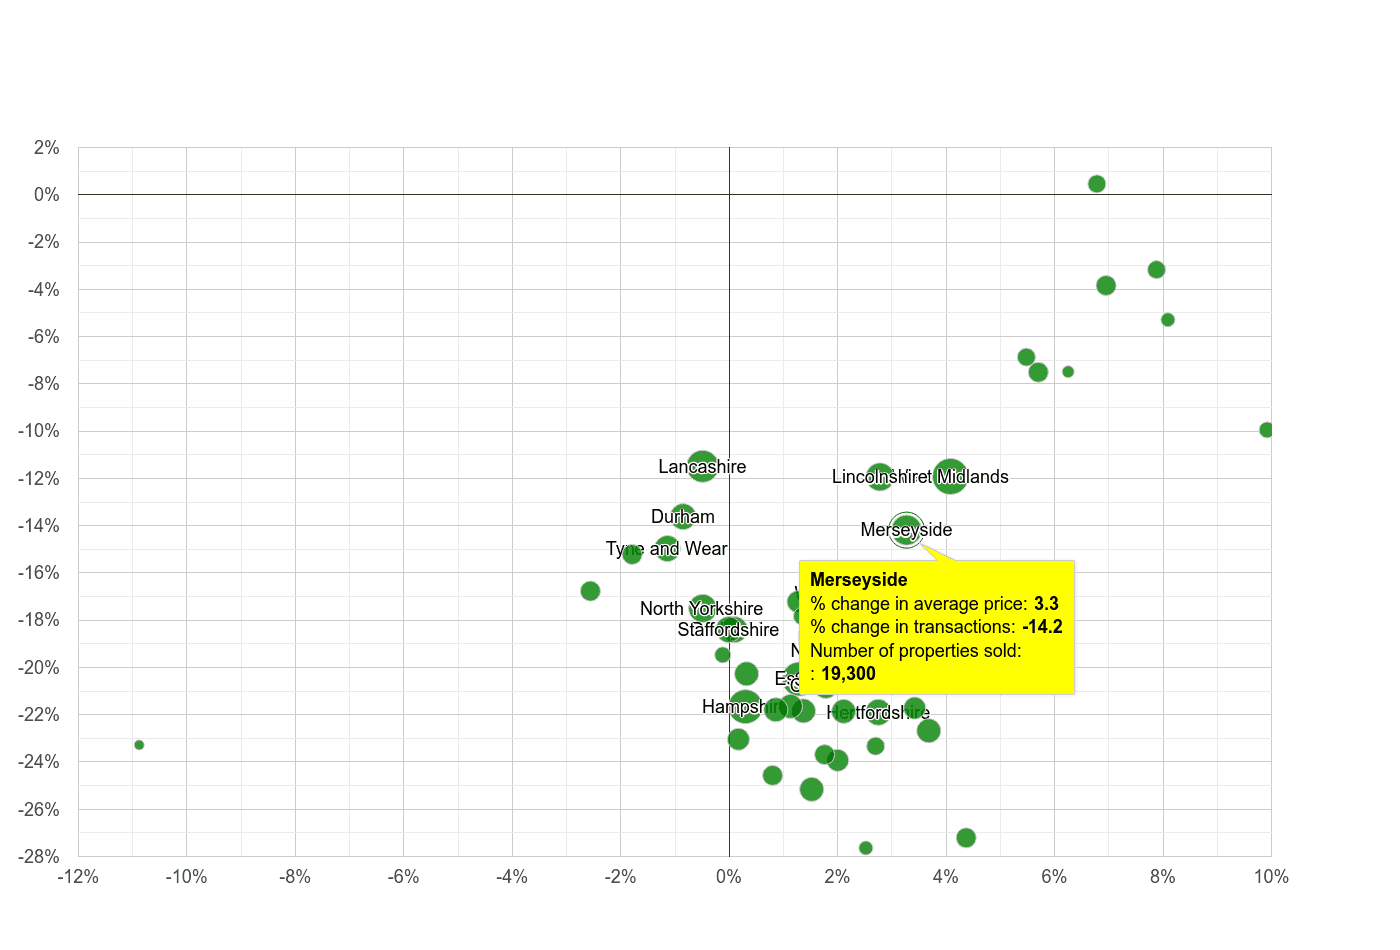 Merseyside property price and sales volume change relative to other counties